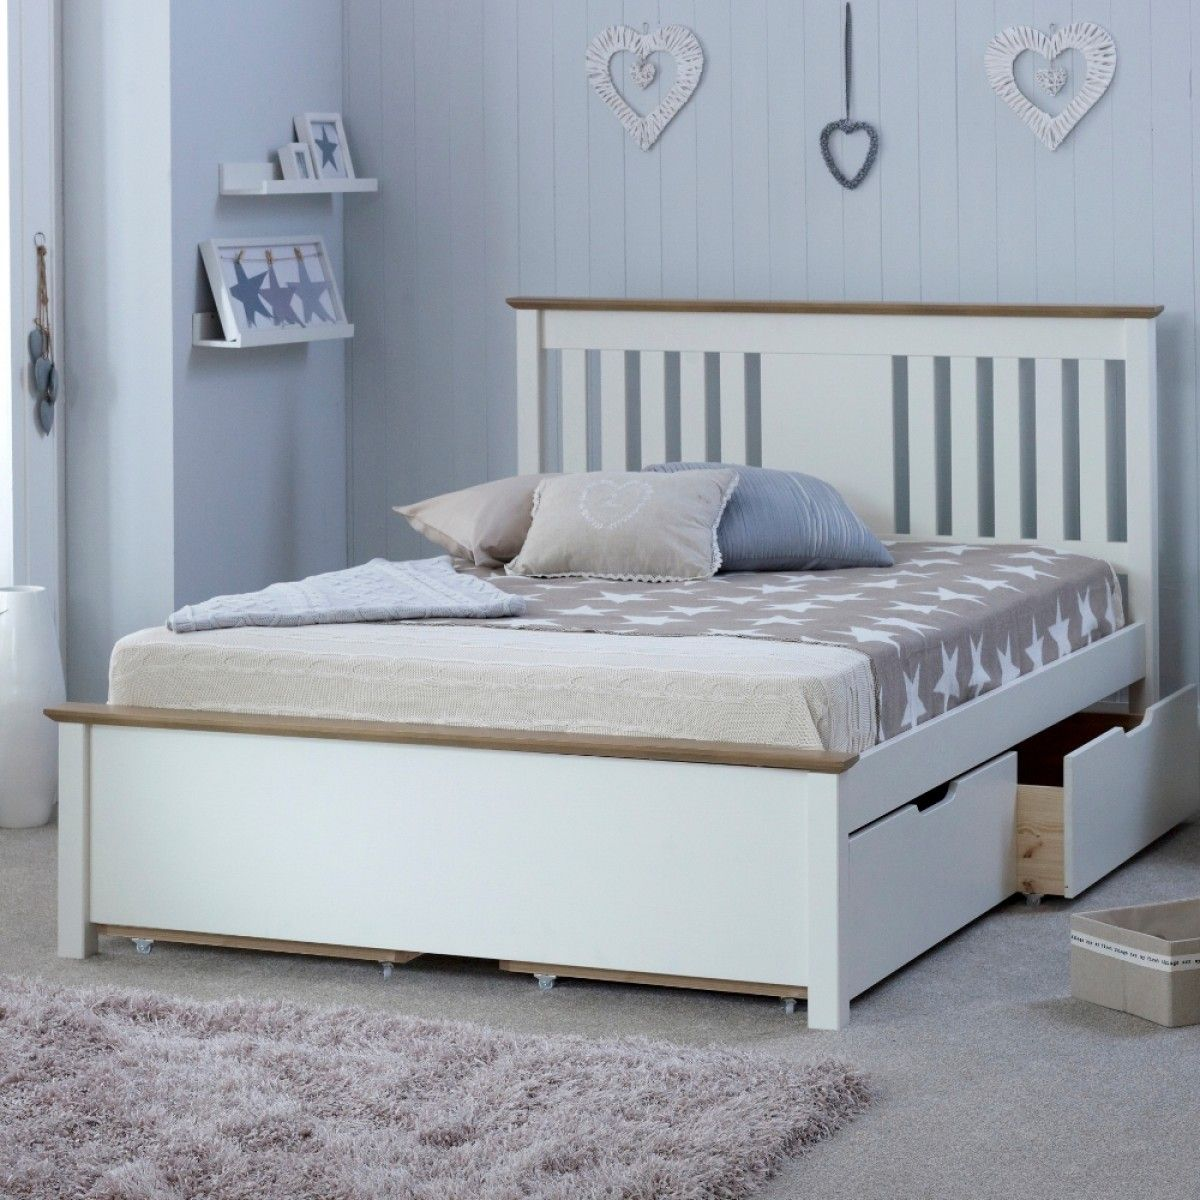 Chester White And Oak Wooden Bed White Wooden Bed White Bed